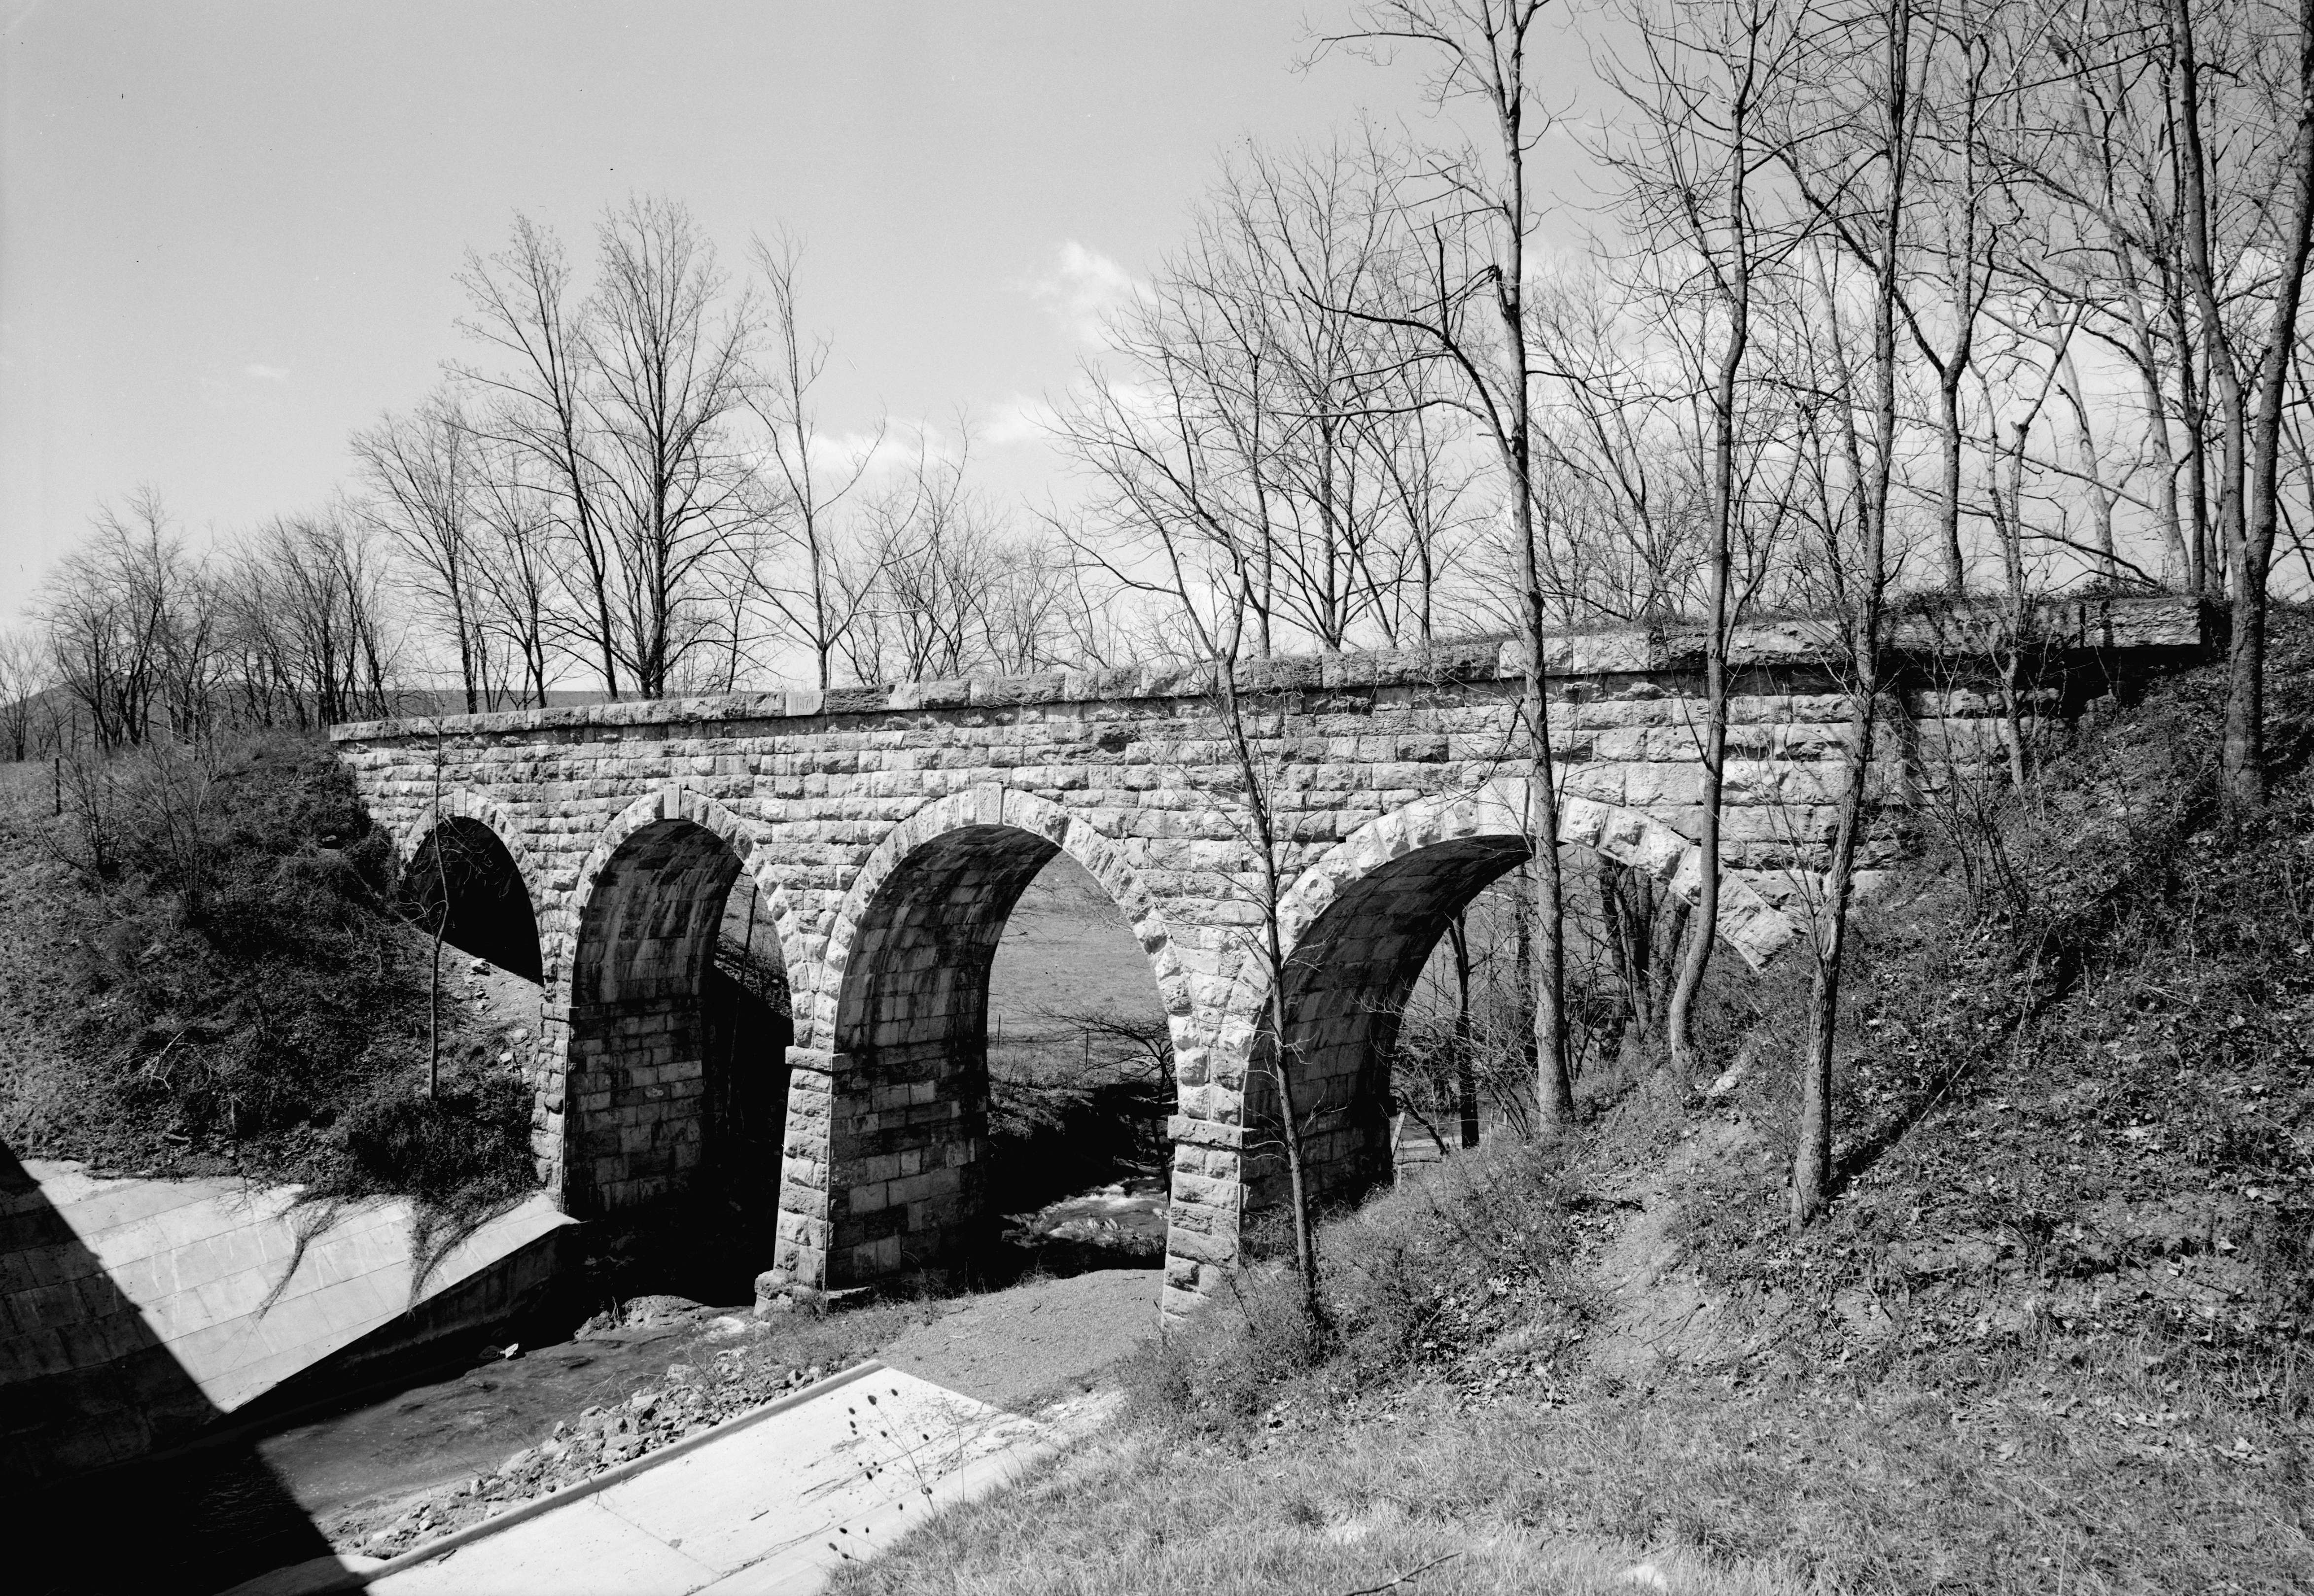 Valley Railroad Folly Mills Creek Viaduct Interstate Staunton Vicinity Augusta